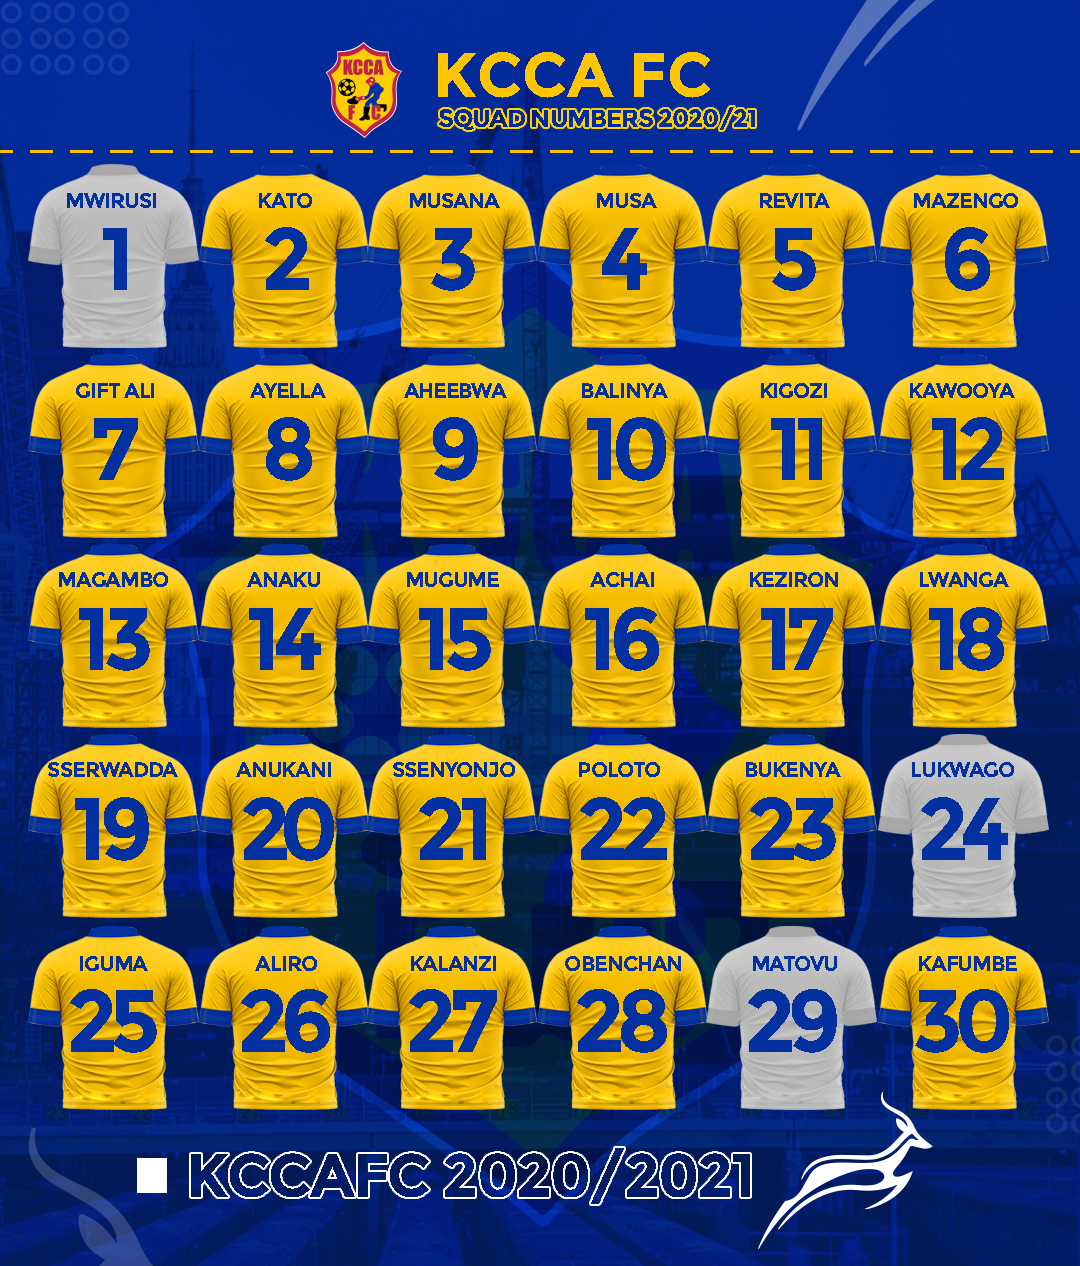 OFFICIAL SQUAD NUMBERS 2020/21